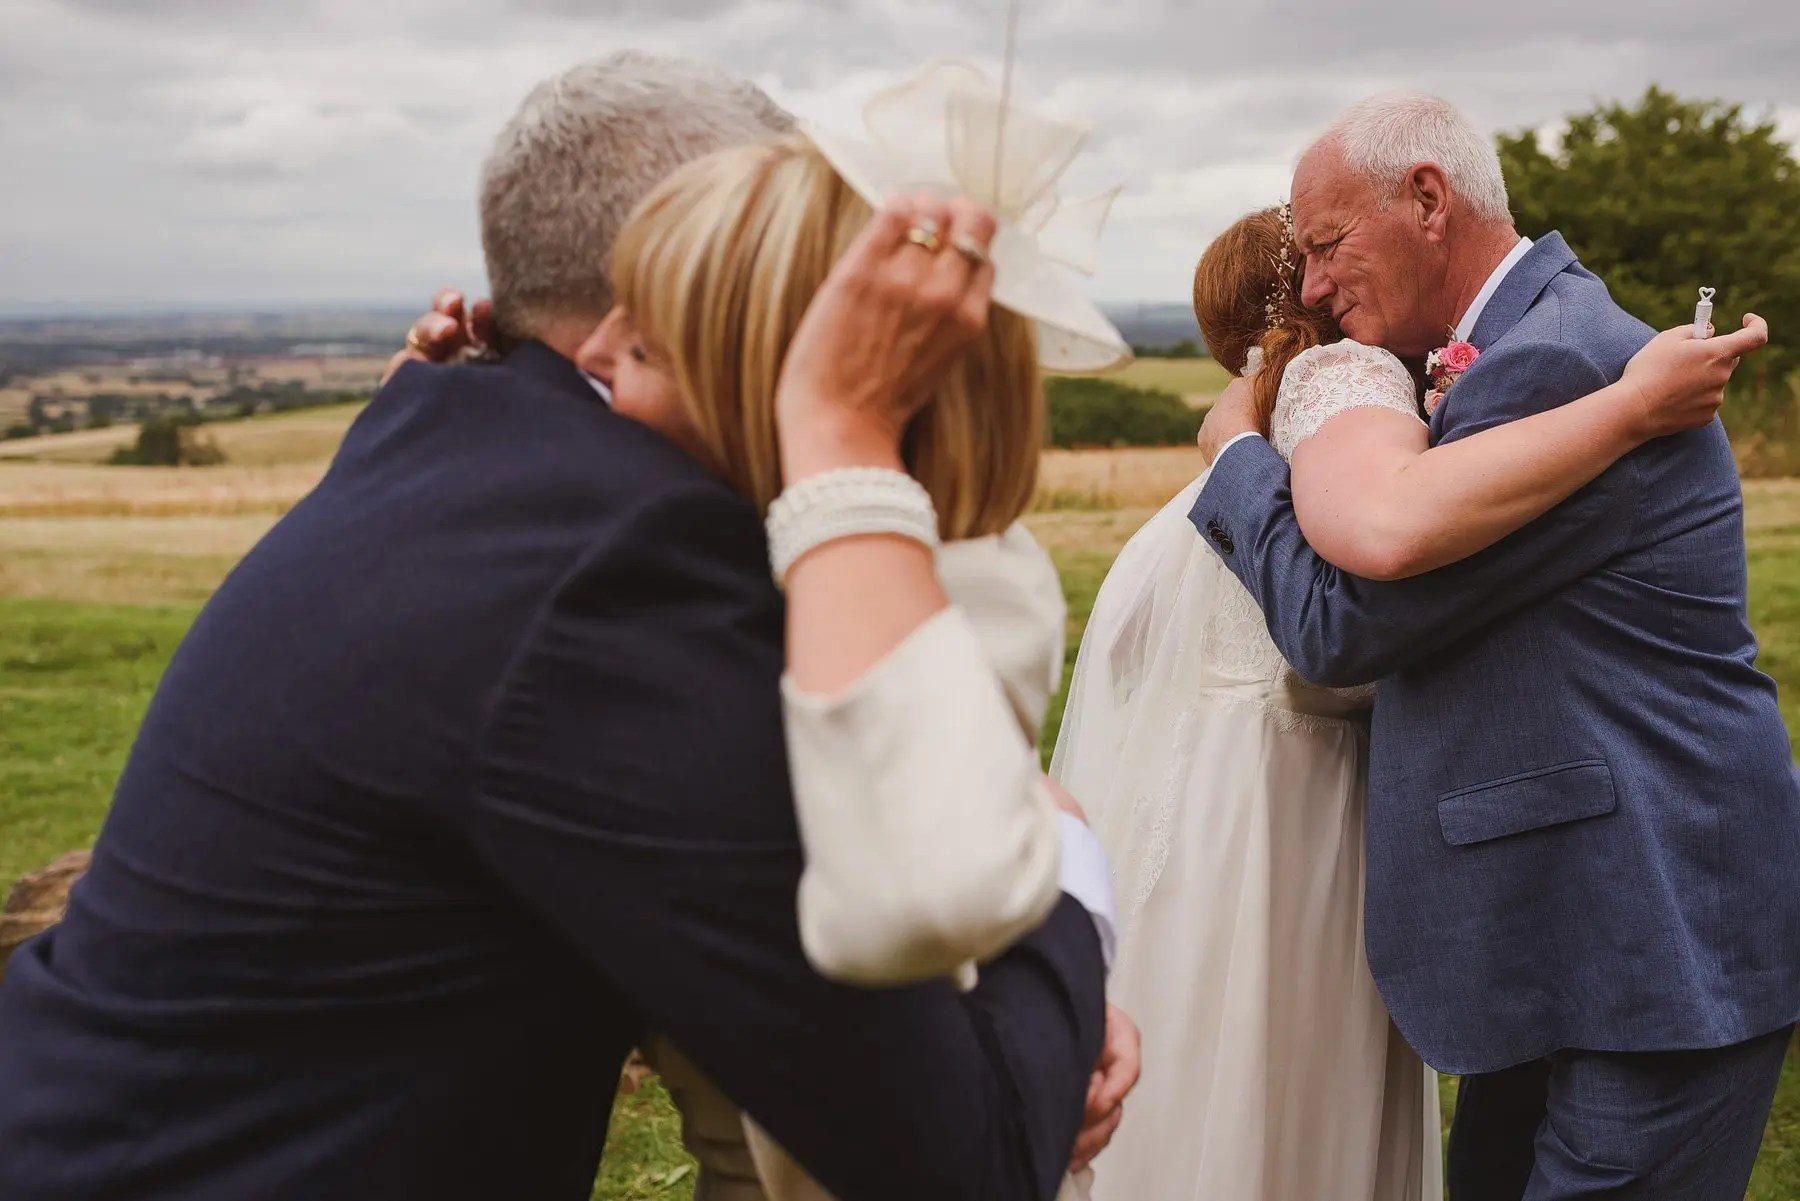 double hug after wedding ceremony at huntstile